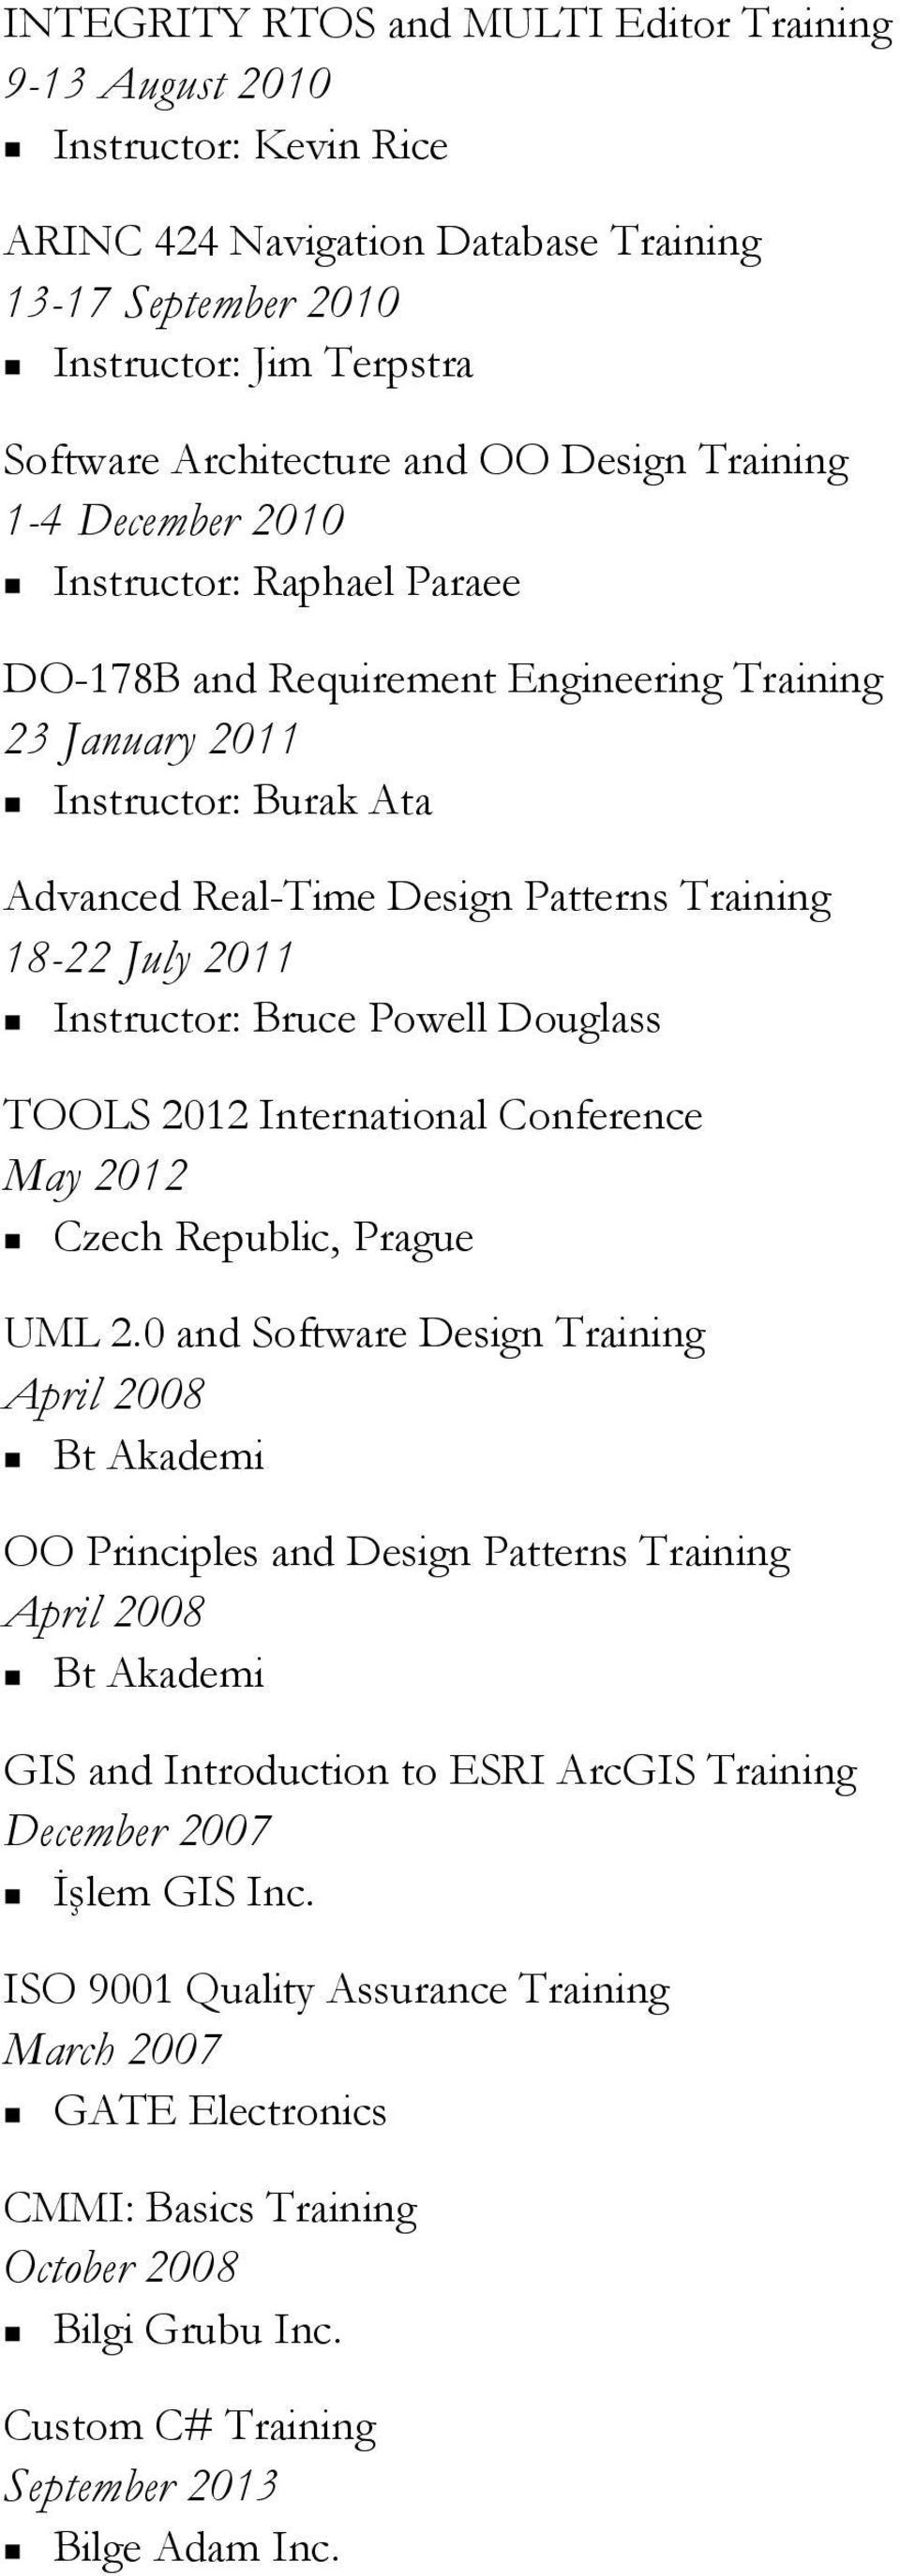 2011 Instructor: Bruce Powell Douglass TOOLS 2012 International Conference May 2012 Czech Republic, Prague UML 2.